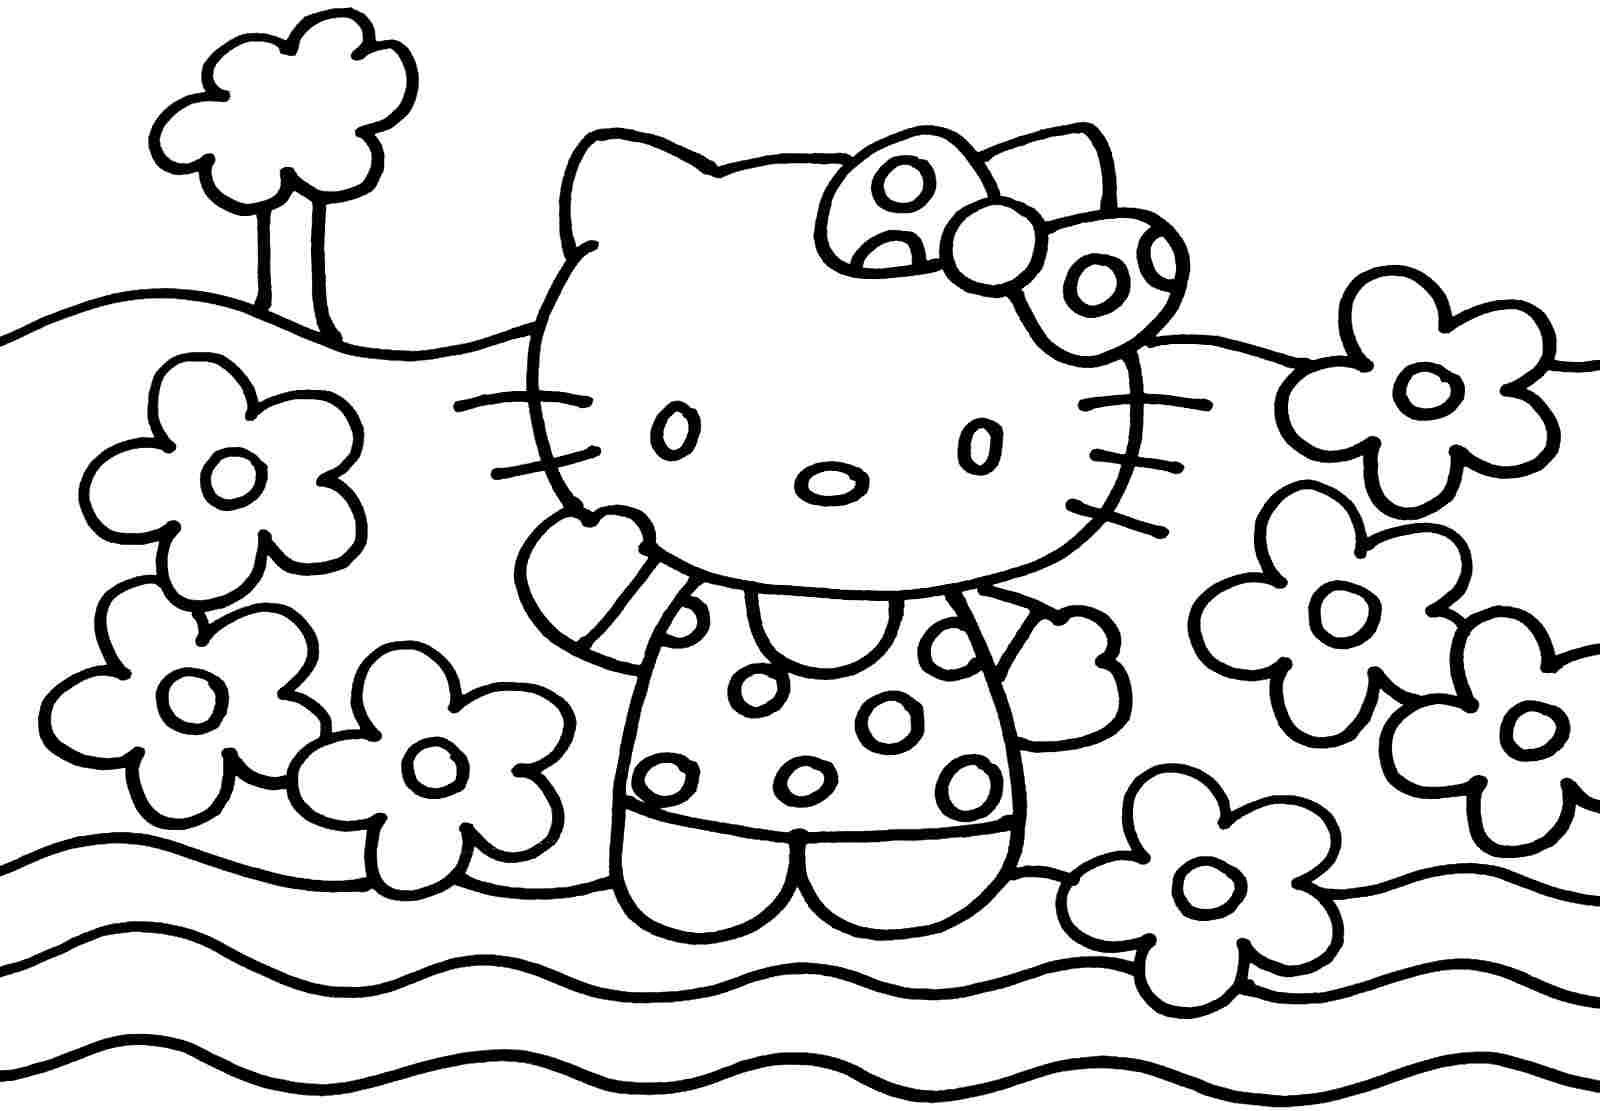 coloring pages : Online Coloring By Numbers For Adults Free ... | 1111x1600